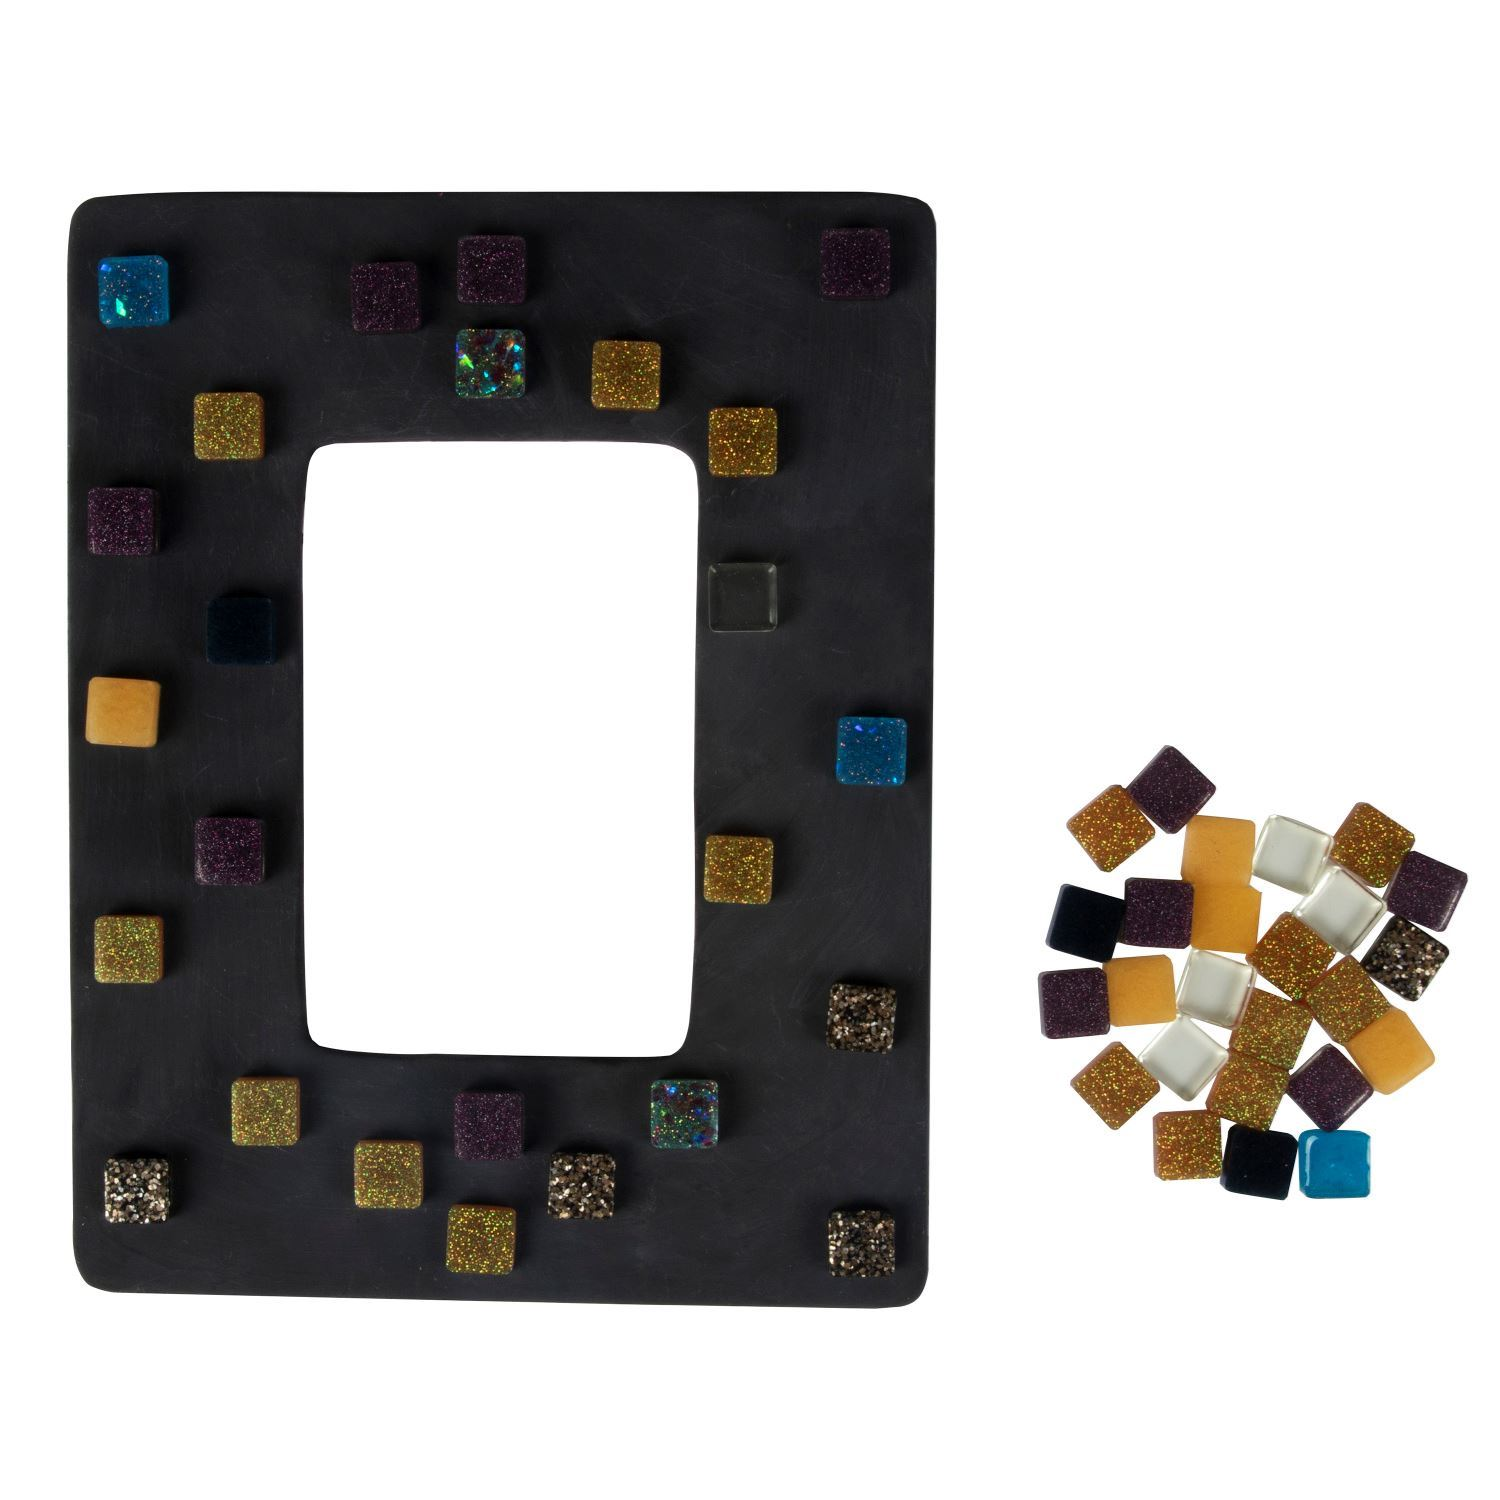 Clear Casting & Coating Epoxy Resin Kit tile frame project